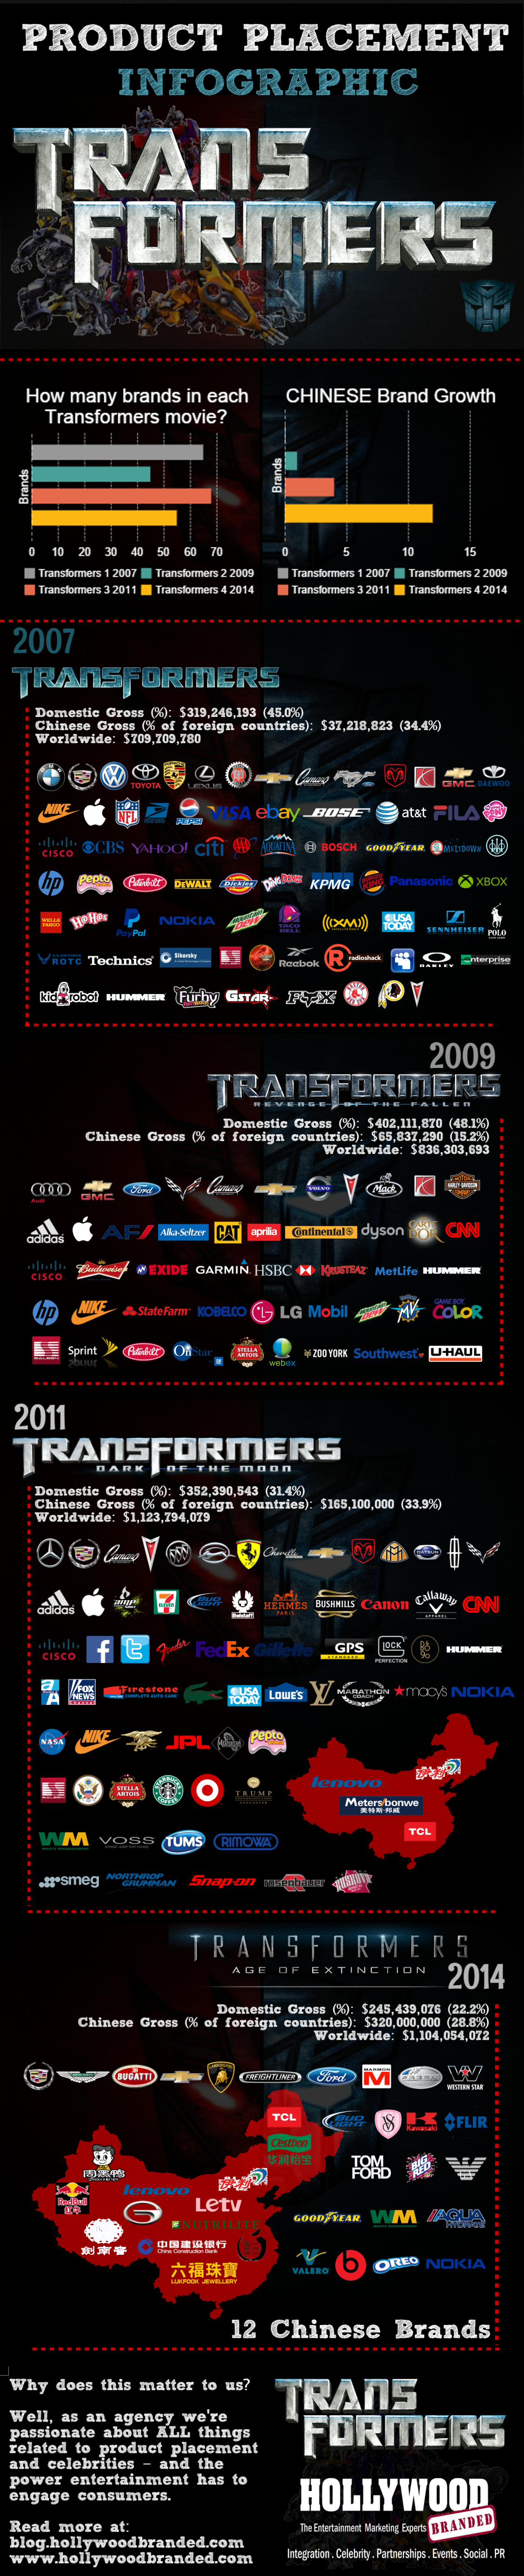 Transformers_Franchise_Product_Placement_Infographic.png